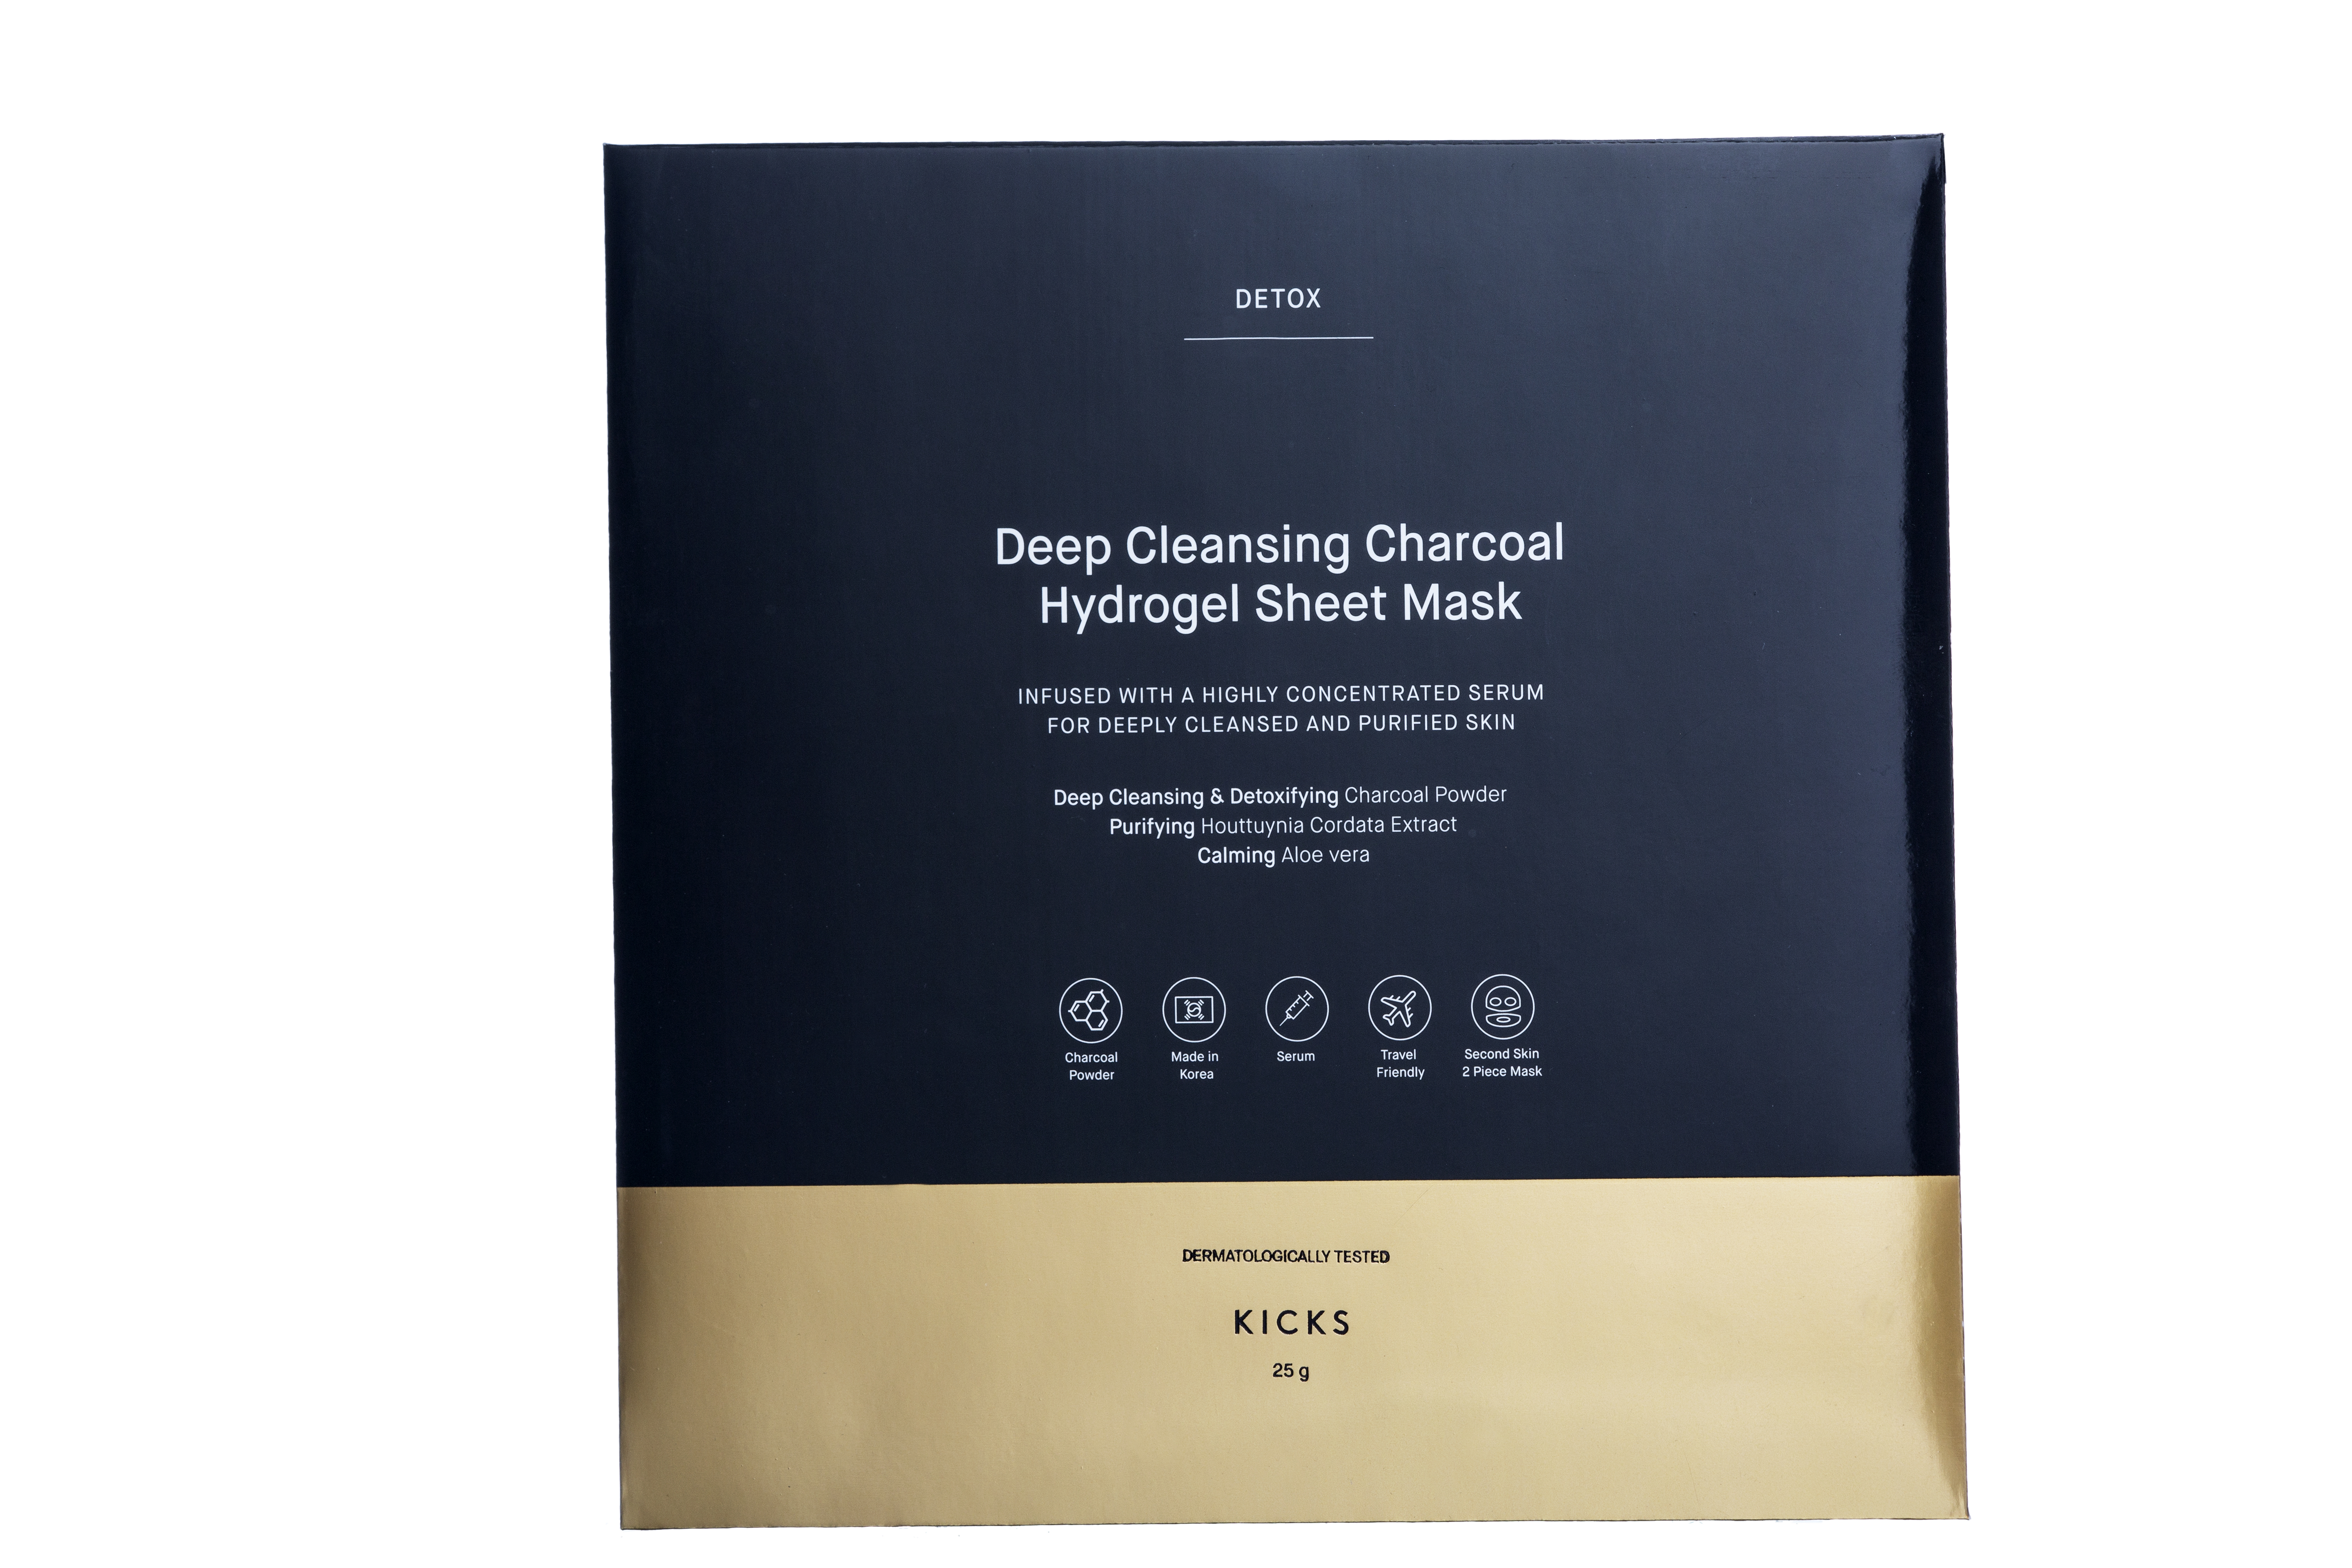 Deep Cleansing Charcoal Hydrogel Sheet Mask